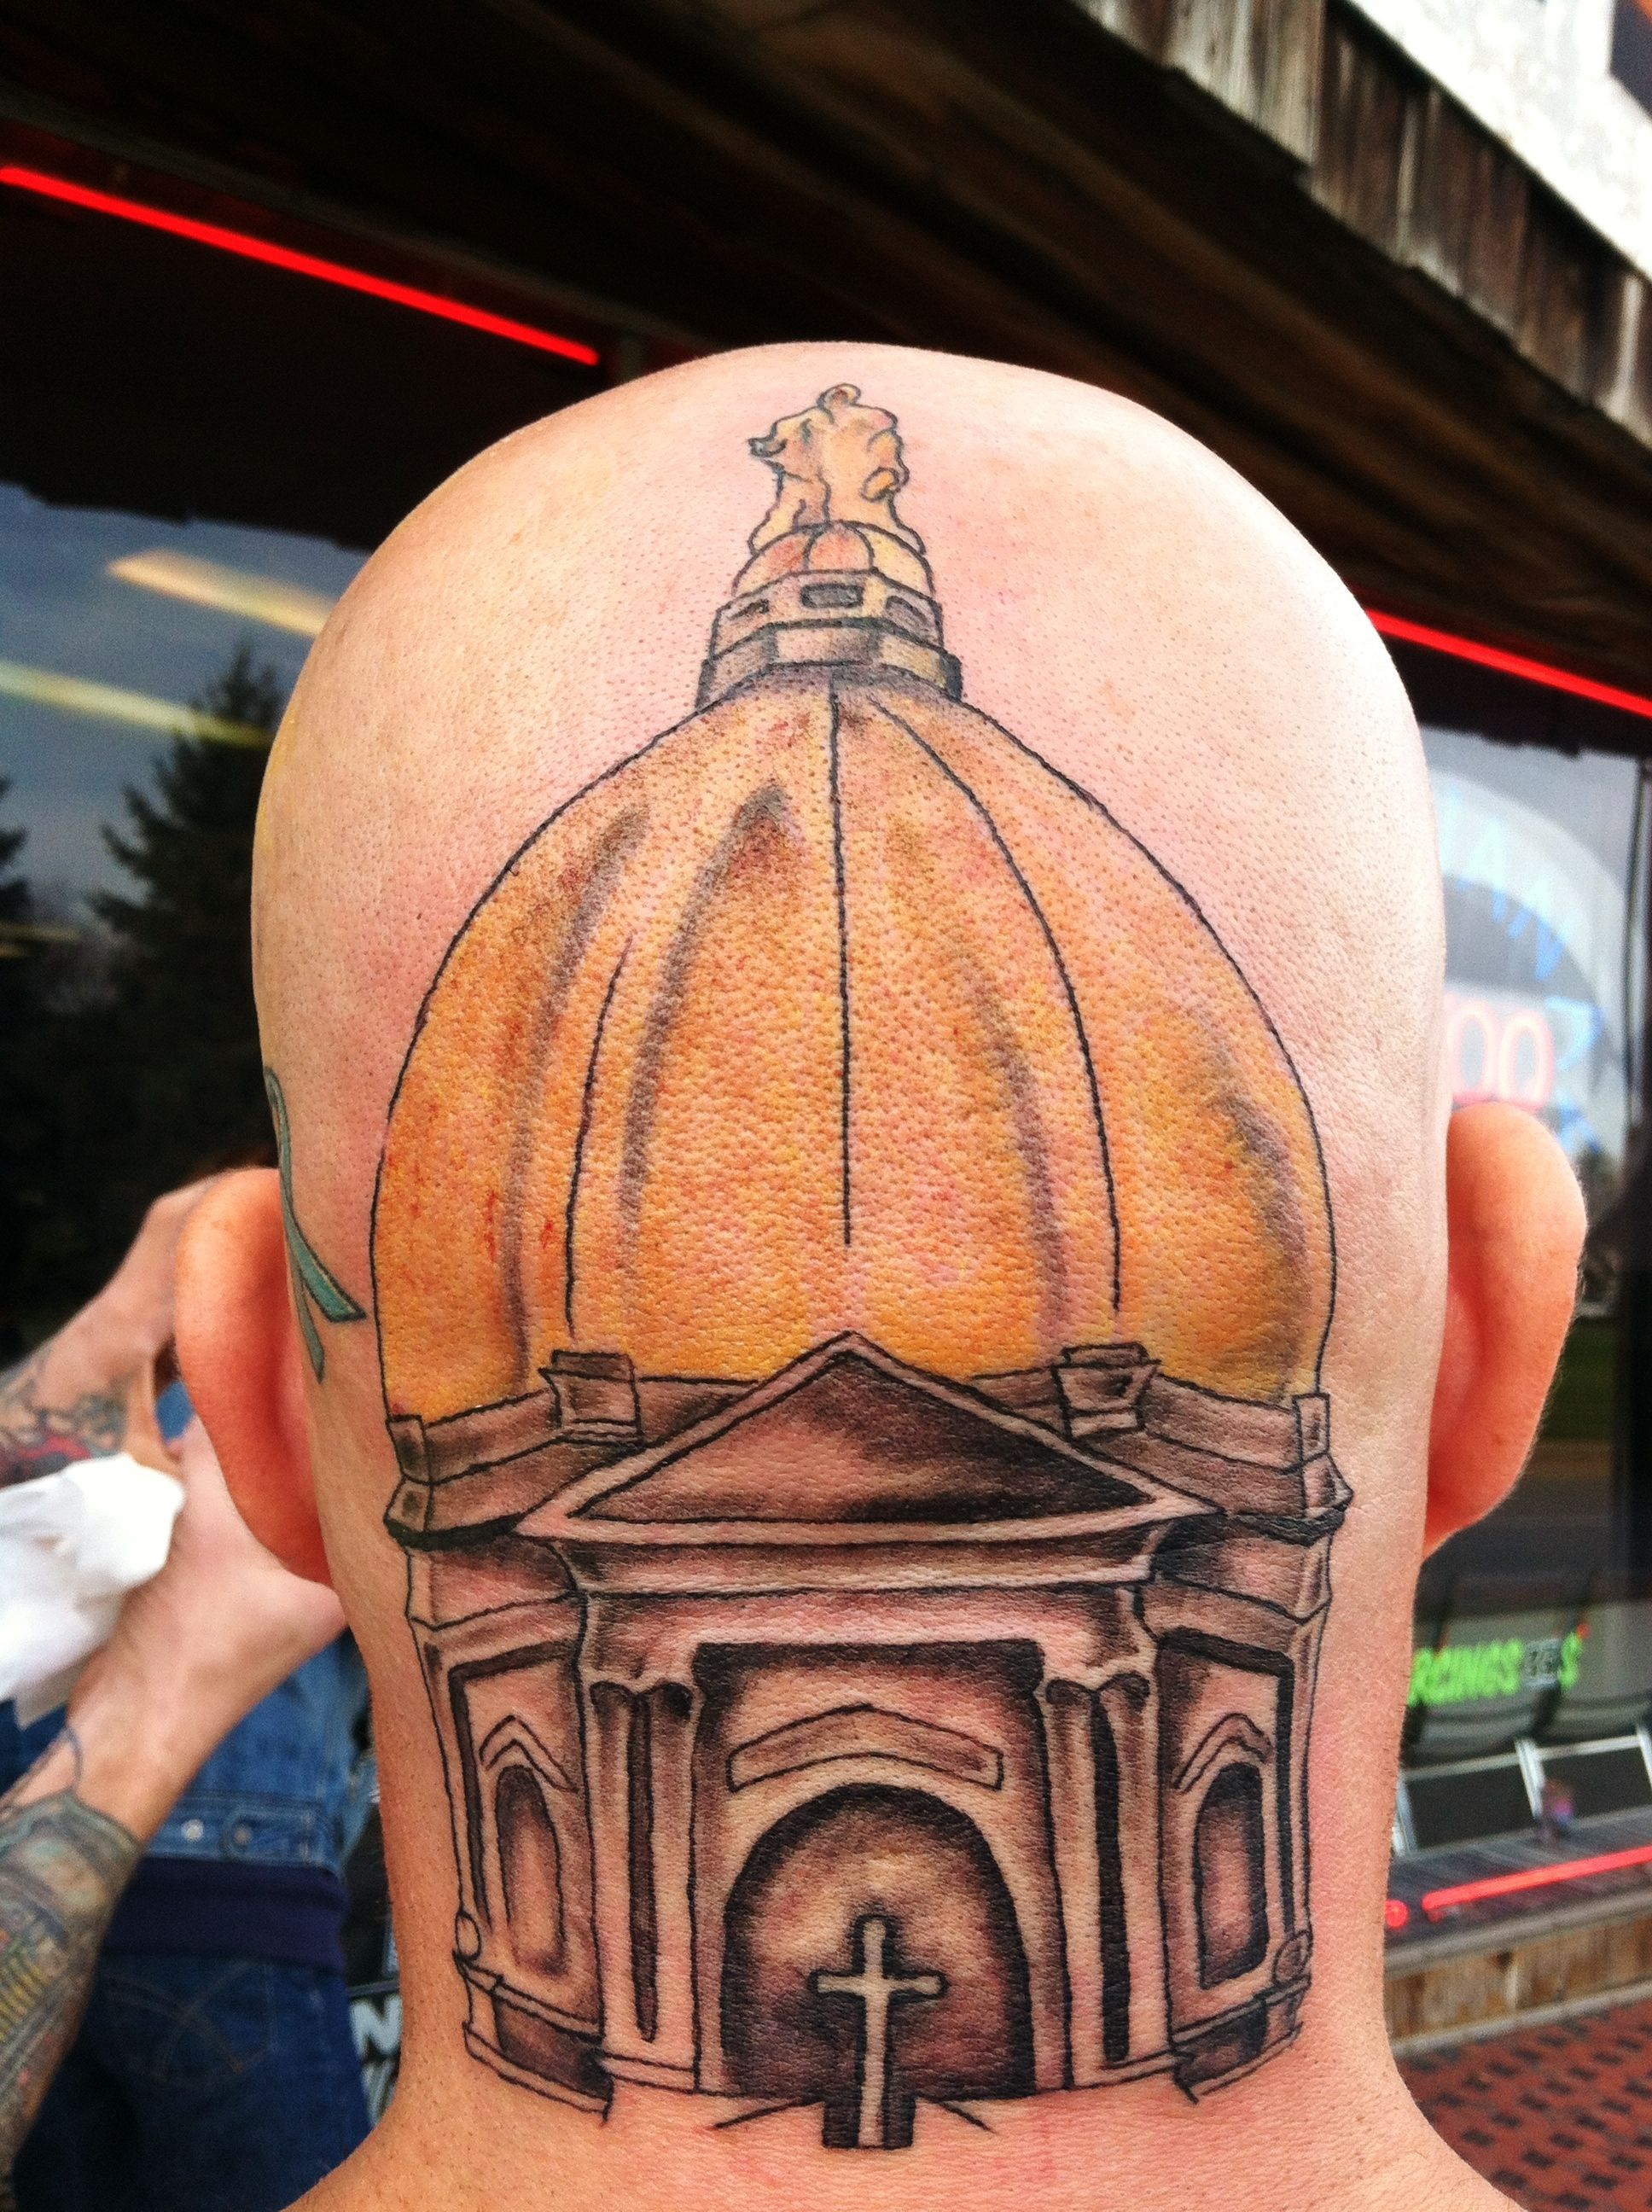 Now this is a real notre dame fan golden dome tattoo for Notre dame tattoos